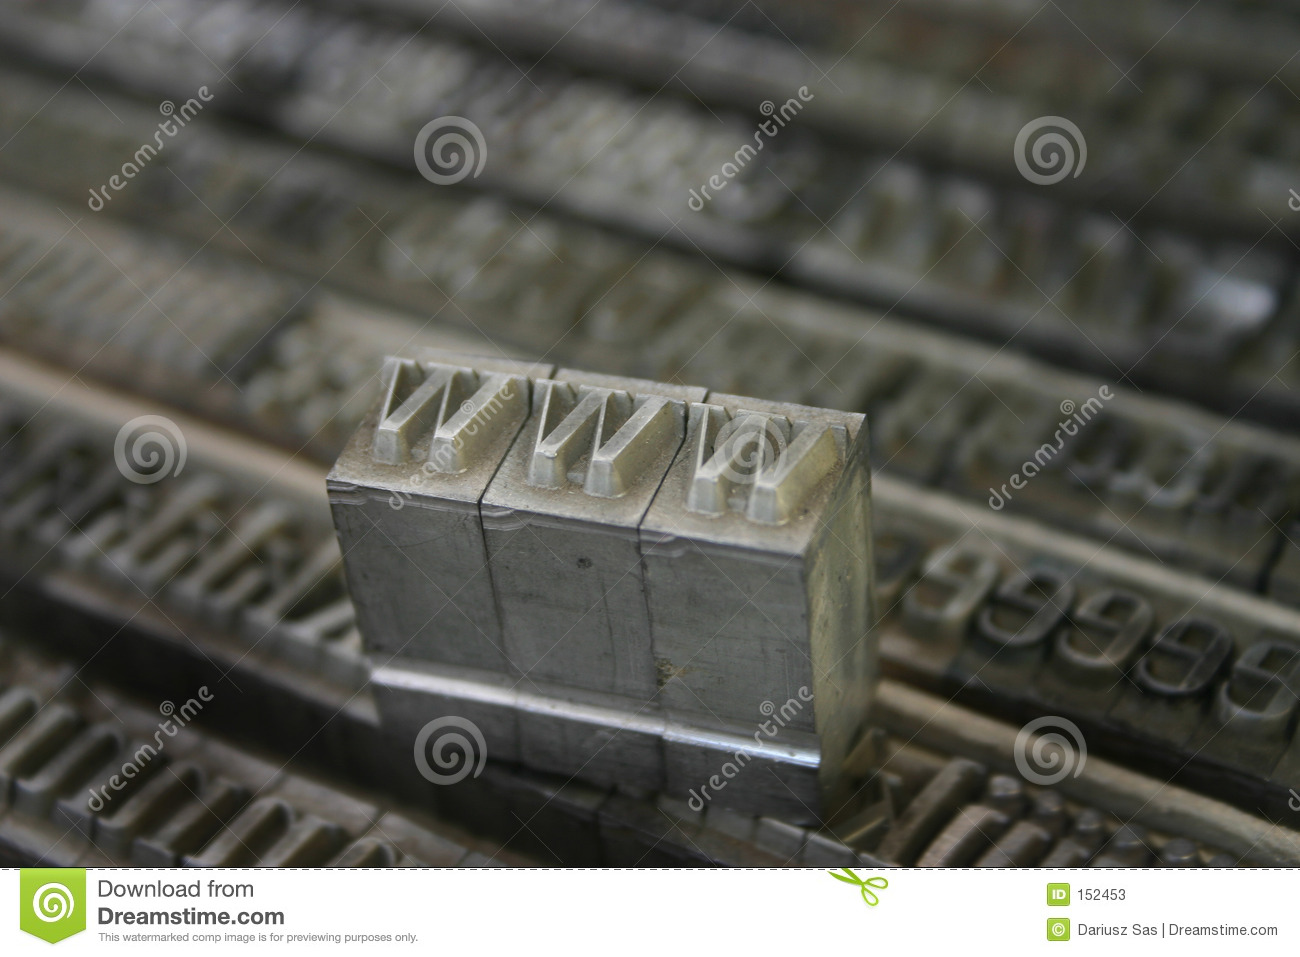 WWW movable type